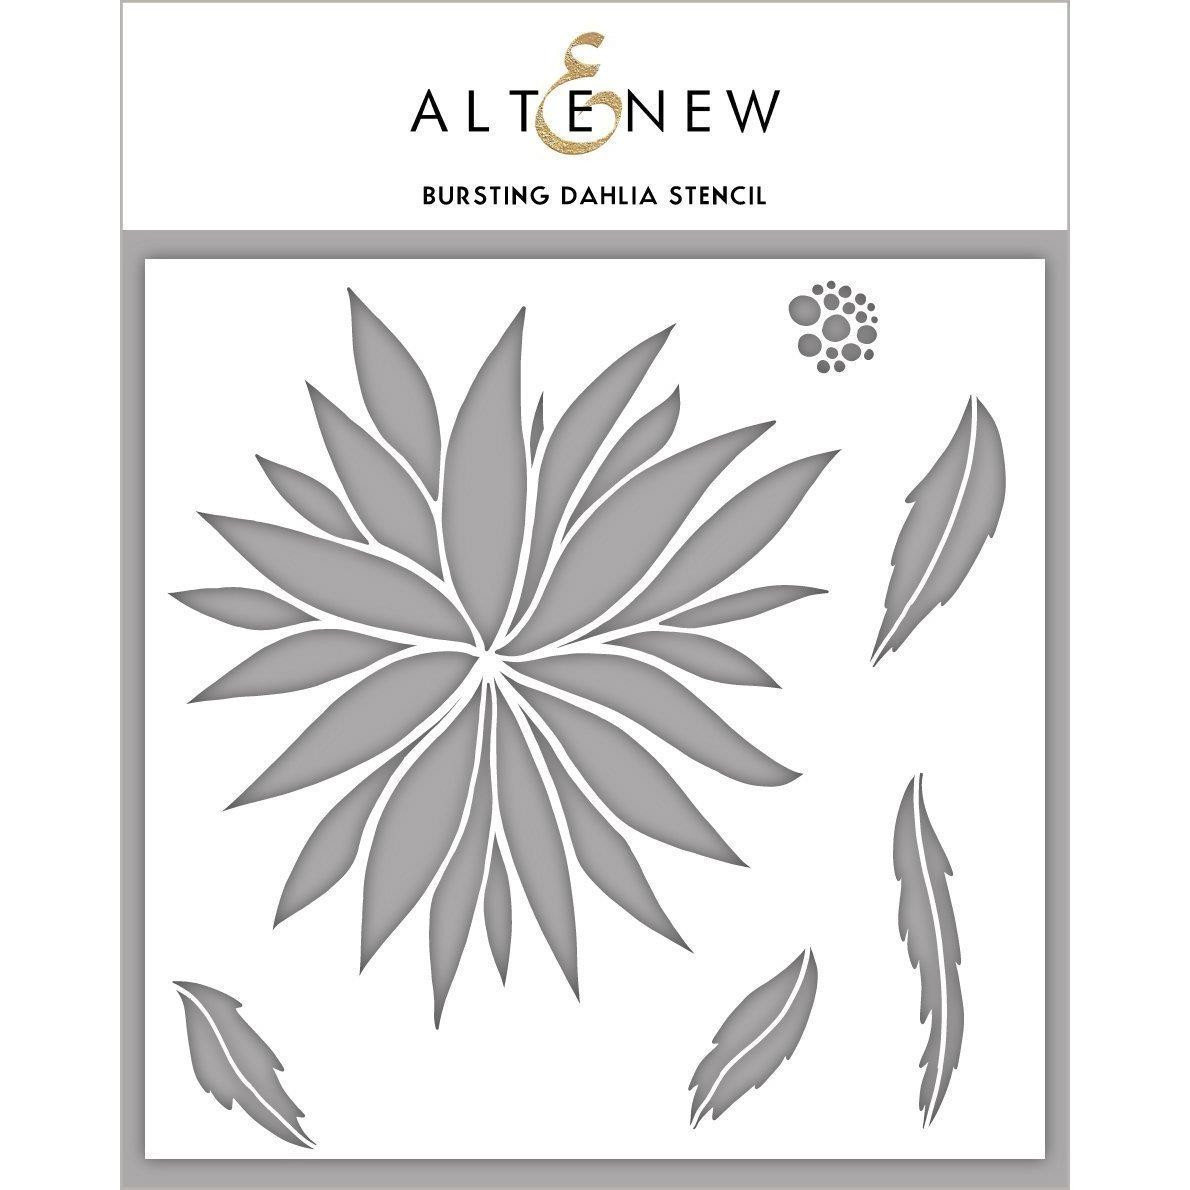 Bursting Dahlia, Altenew Stencils - 737787261897